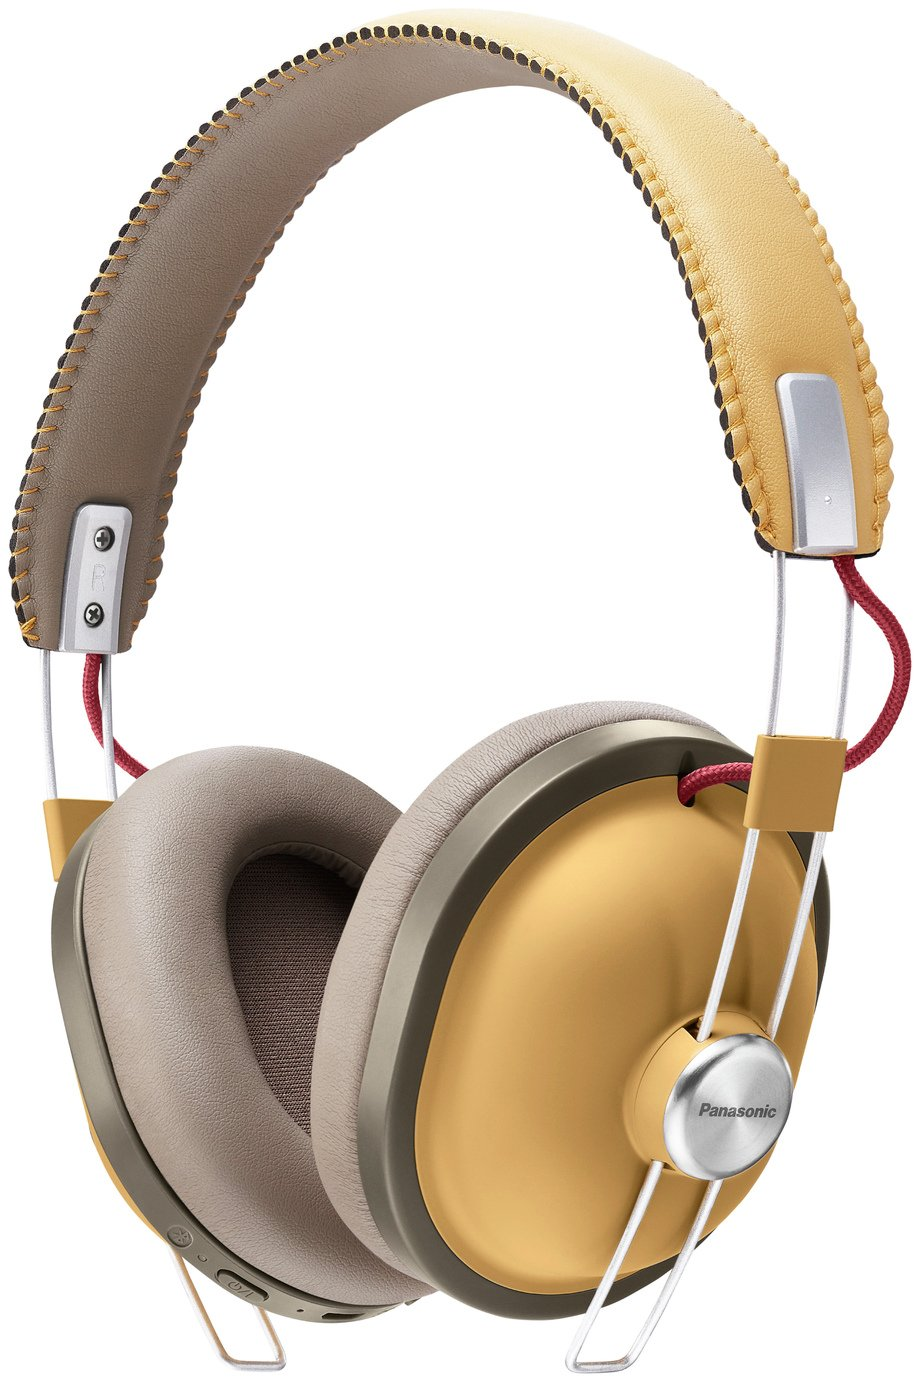 Panasonic RP-HTX80BE Wireless Over-Ear Headphones - Tan